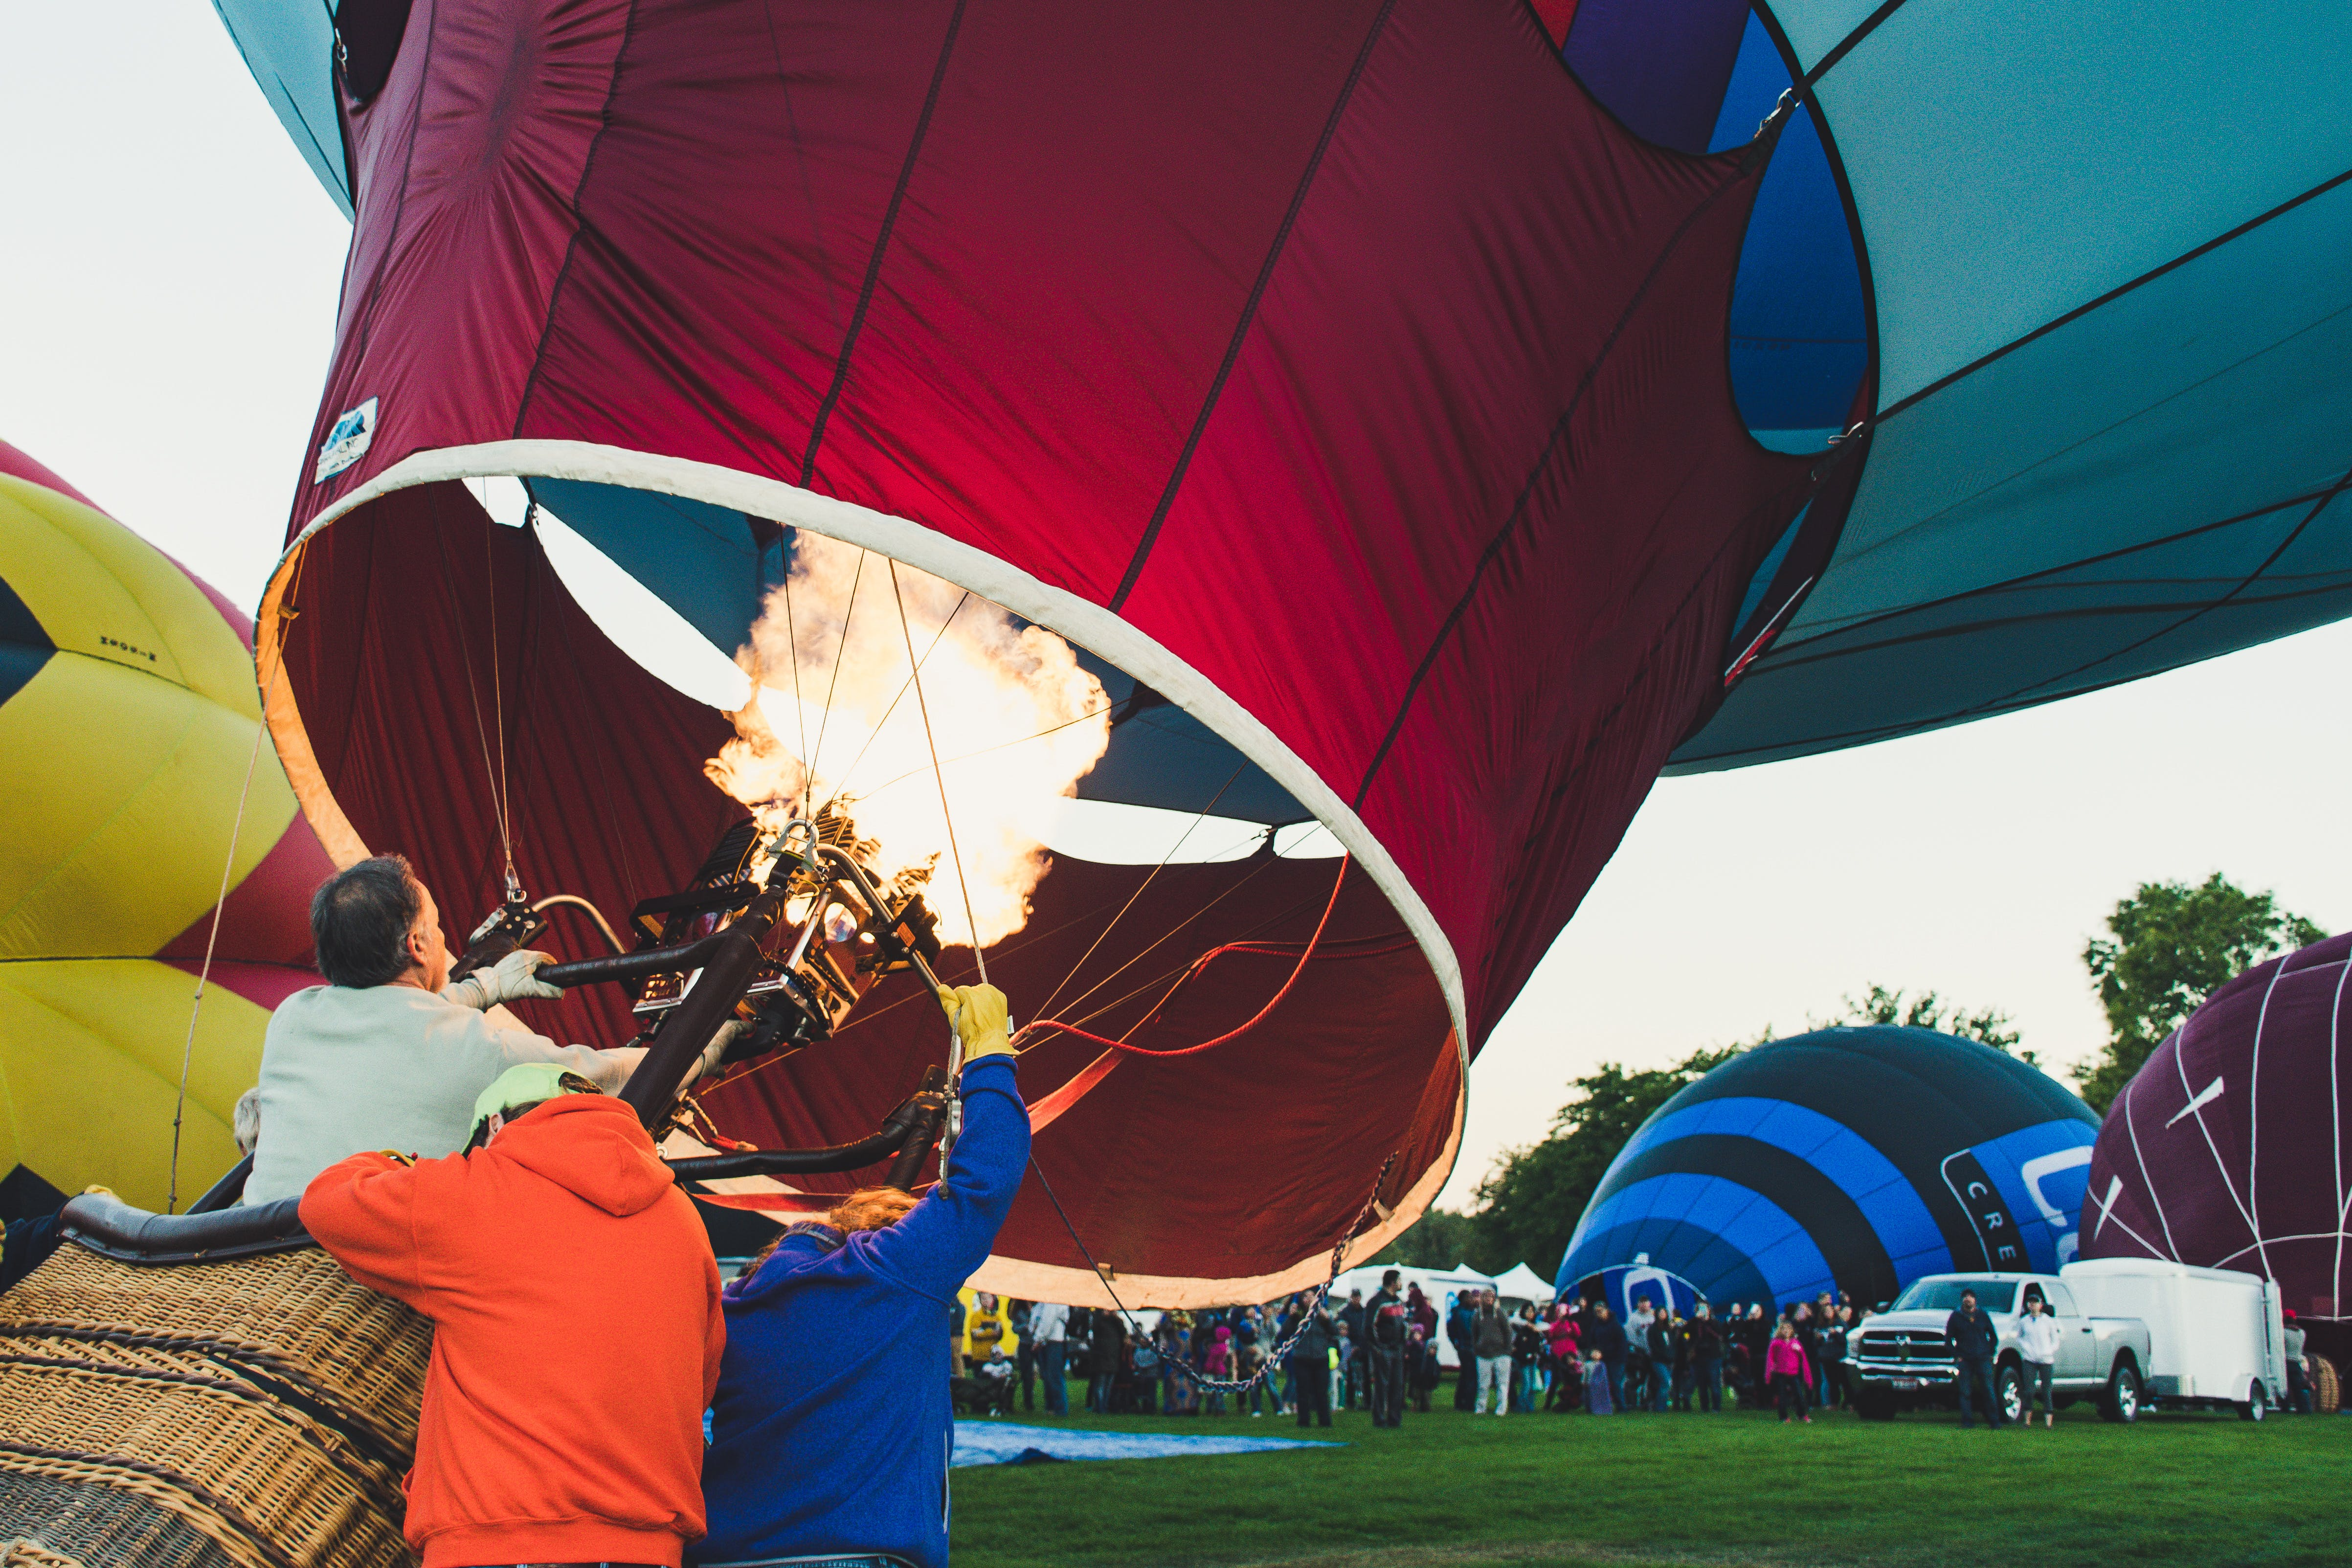 Three People Inside the Hot Air Balloon